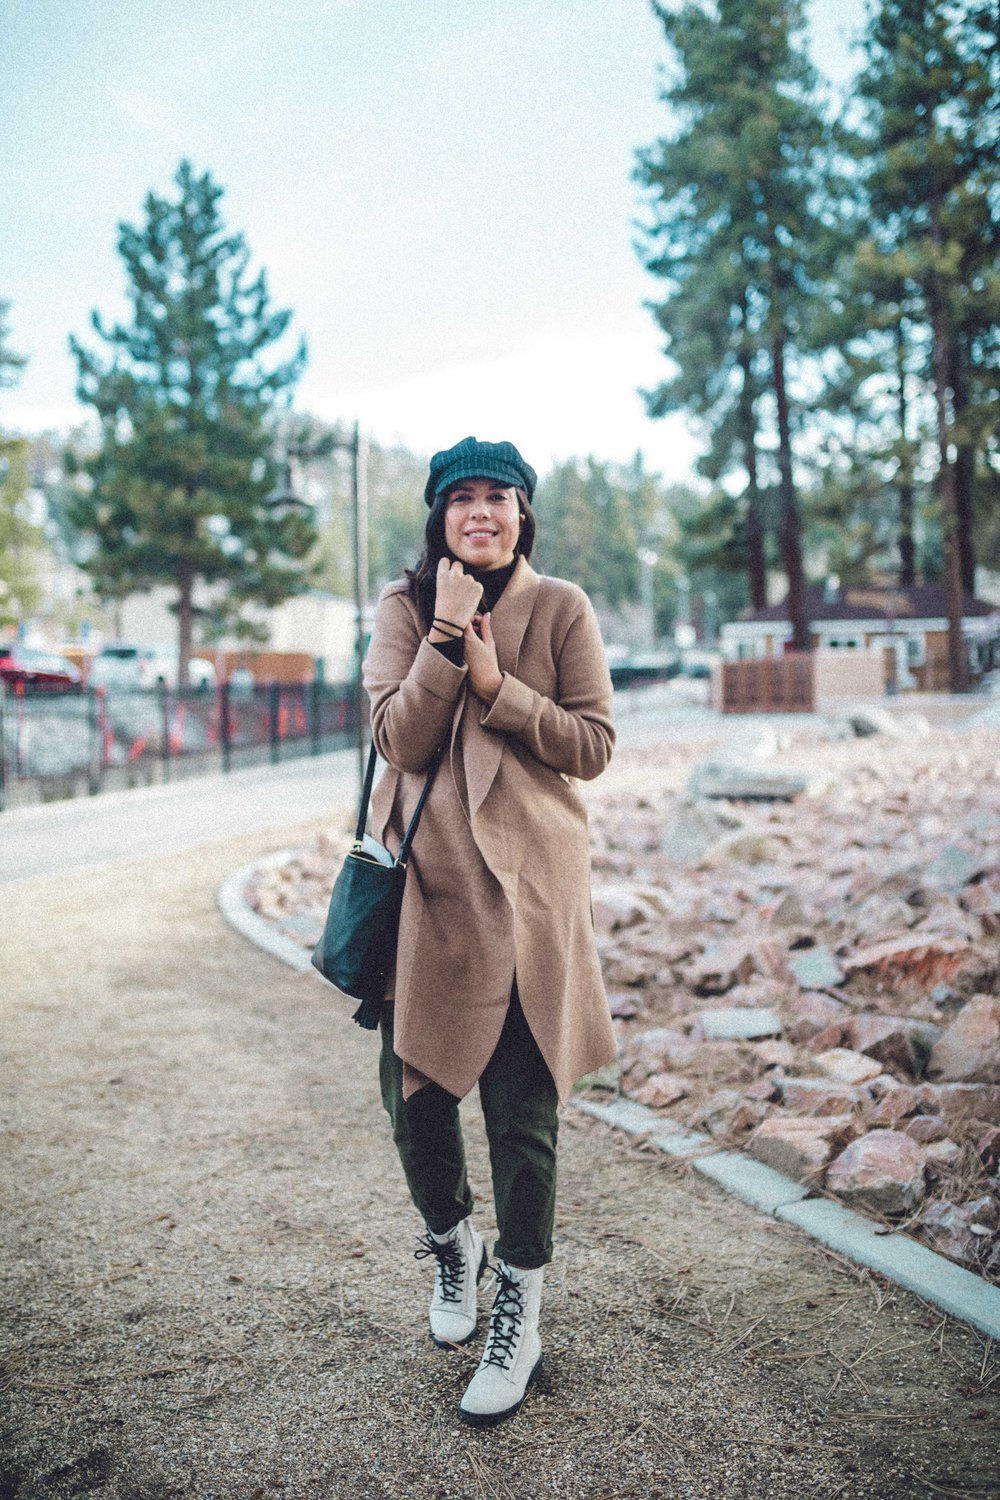 Rachel Off Duty: Big Bear in One Day Travel Guide